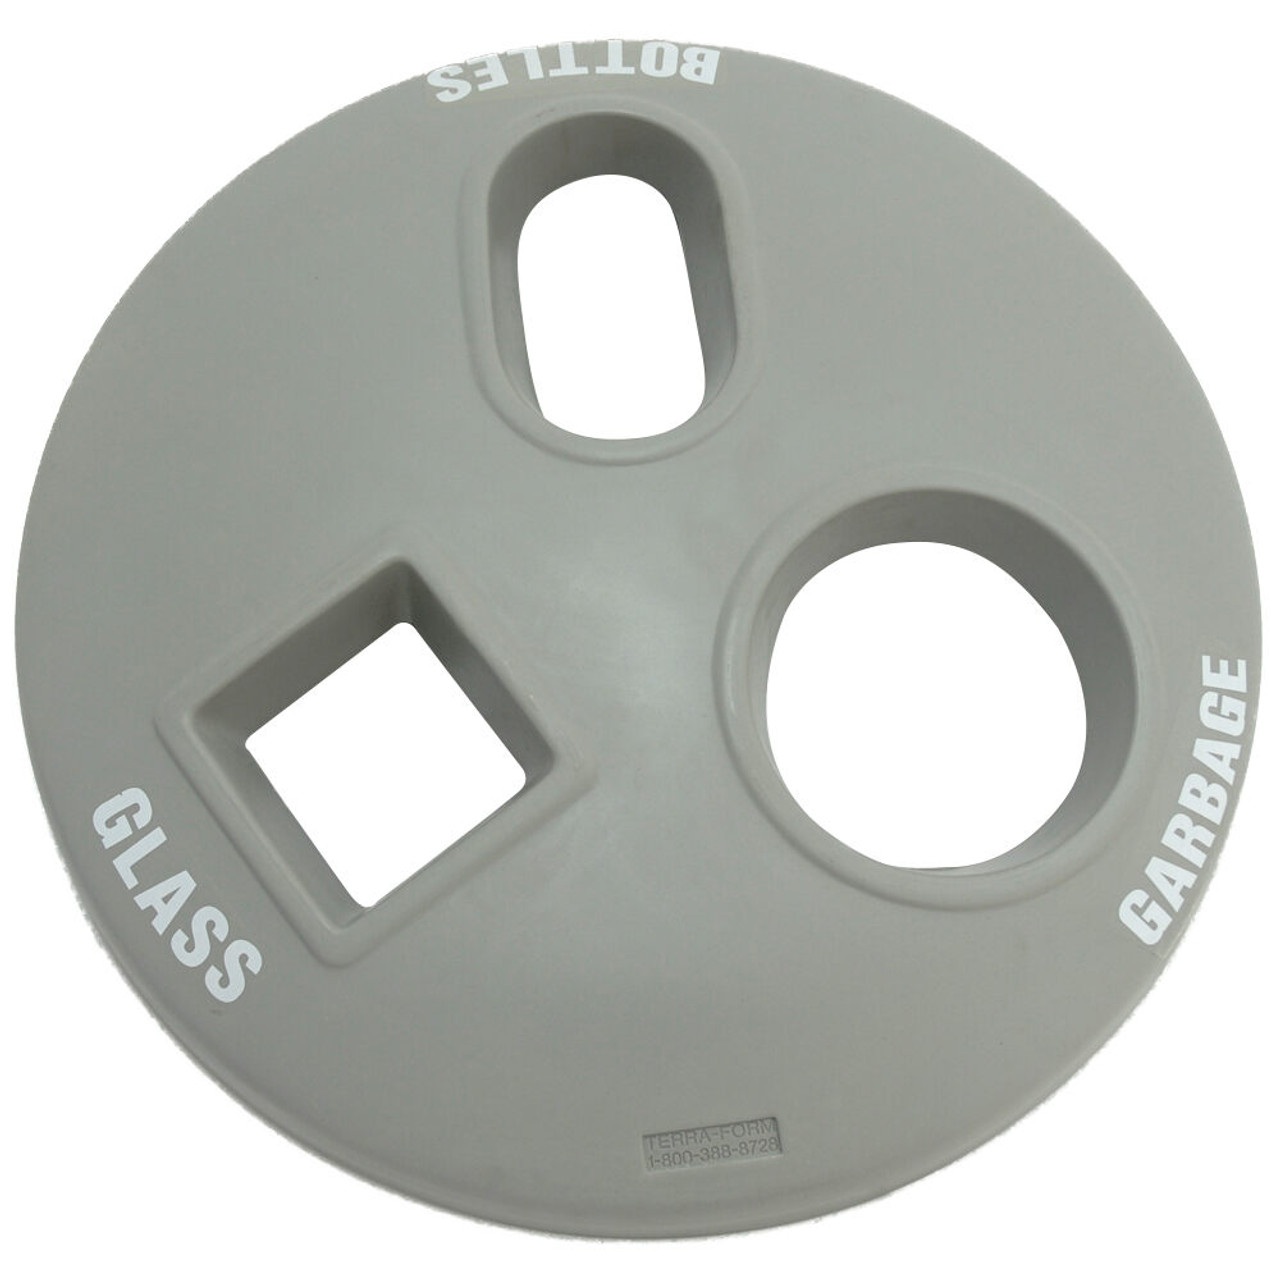 24 Inch Plastic Round Recycle Lid TF1516 with 3 Openings